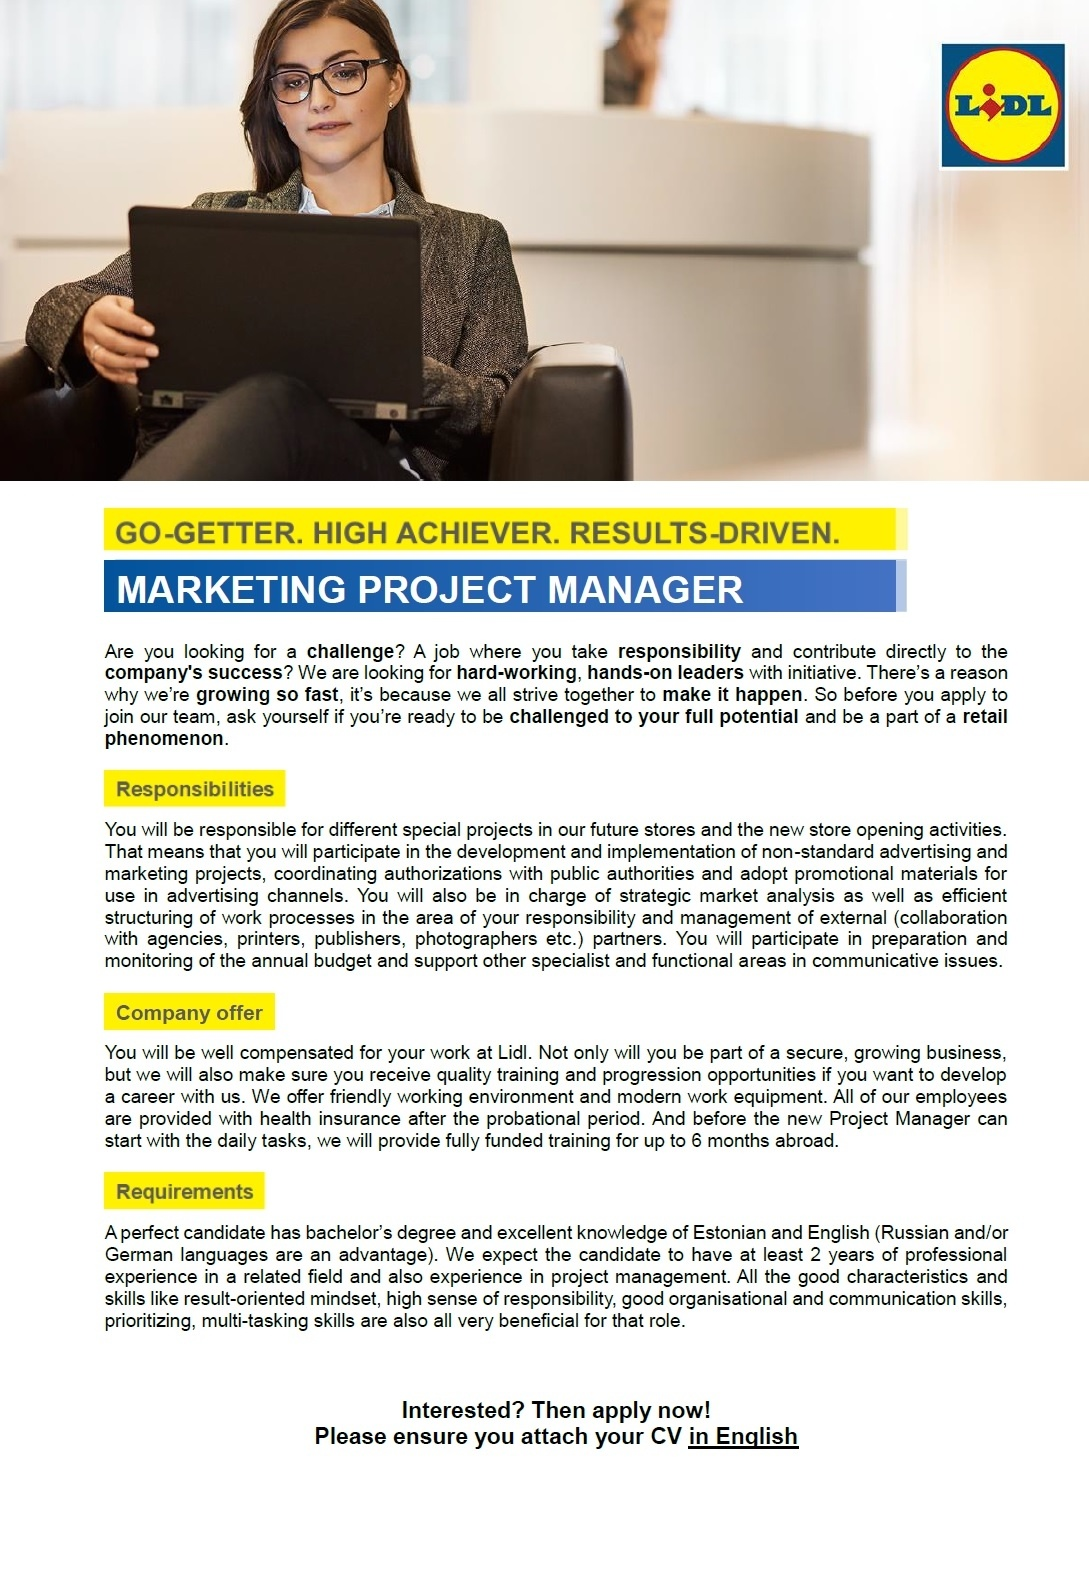 CV Market´s client Marketing Project Manager